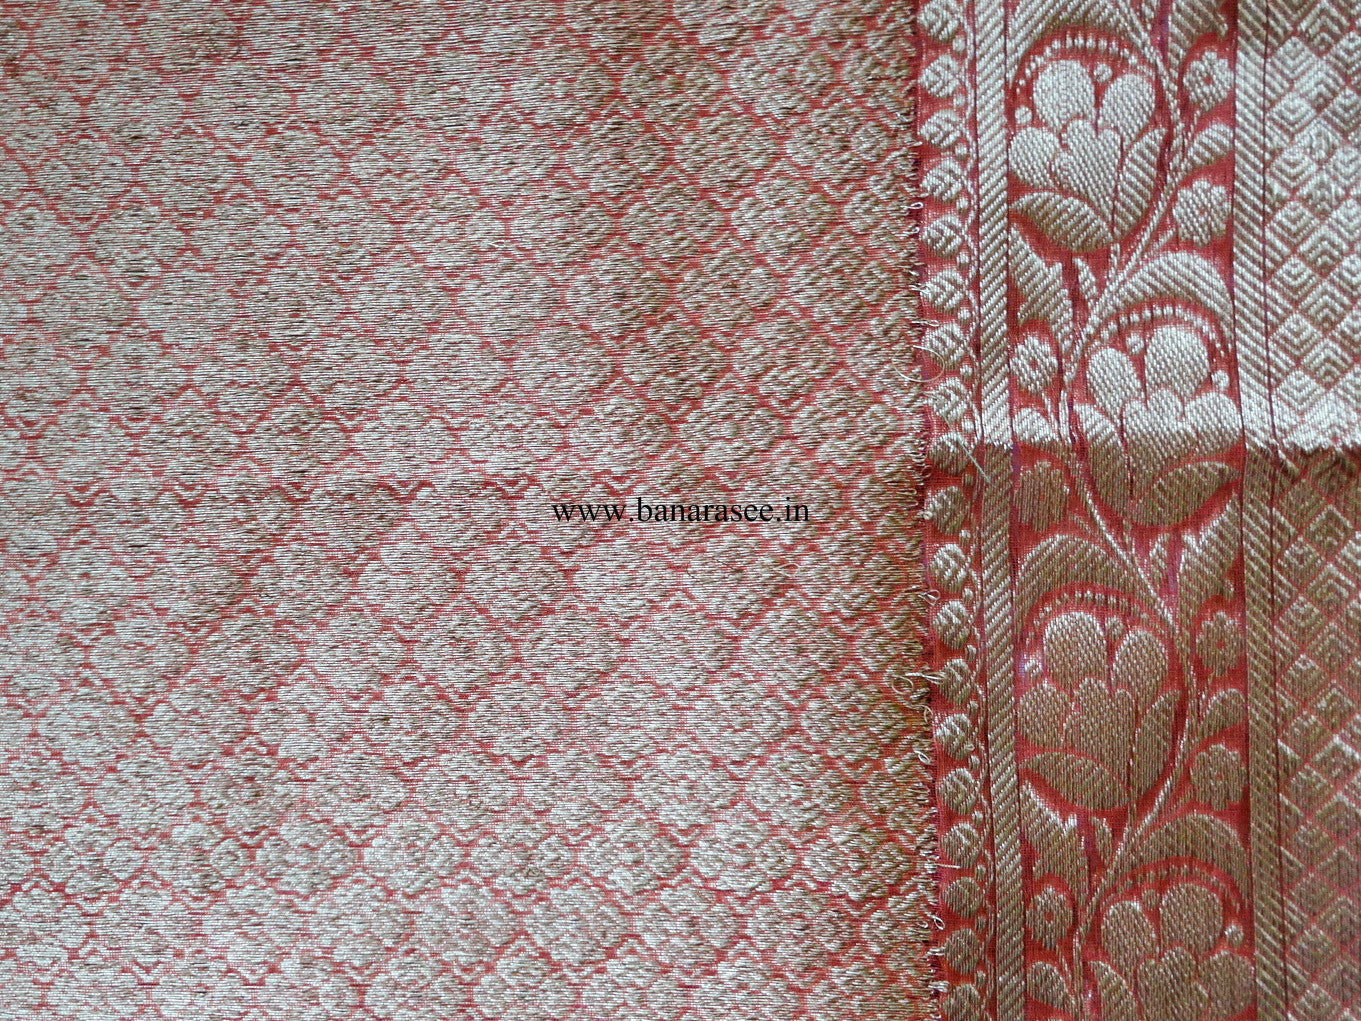 Banarasee/Banarasee Pure Handloom Silk Cotton Sari With Golden Border-Red